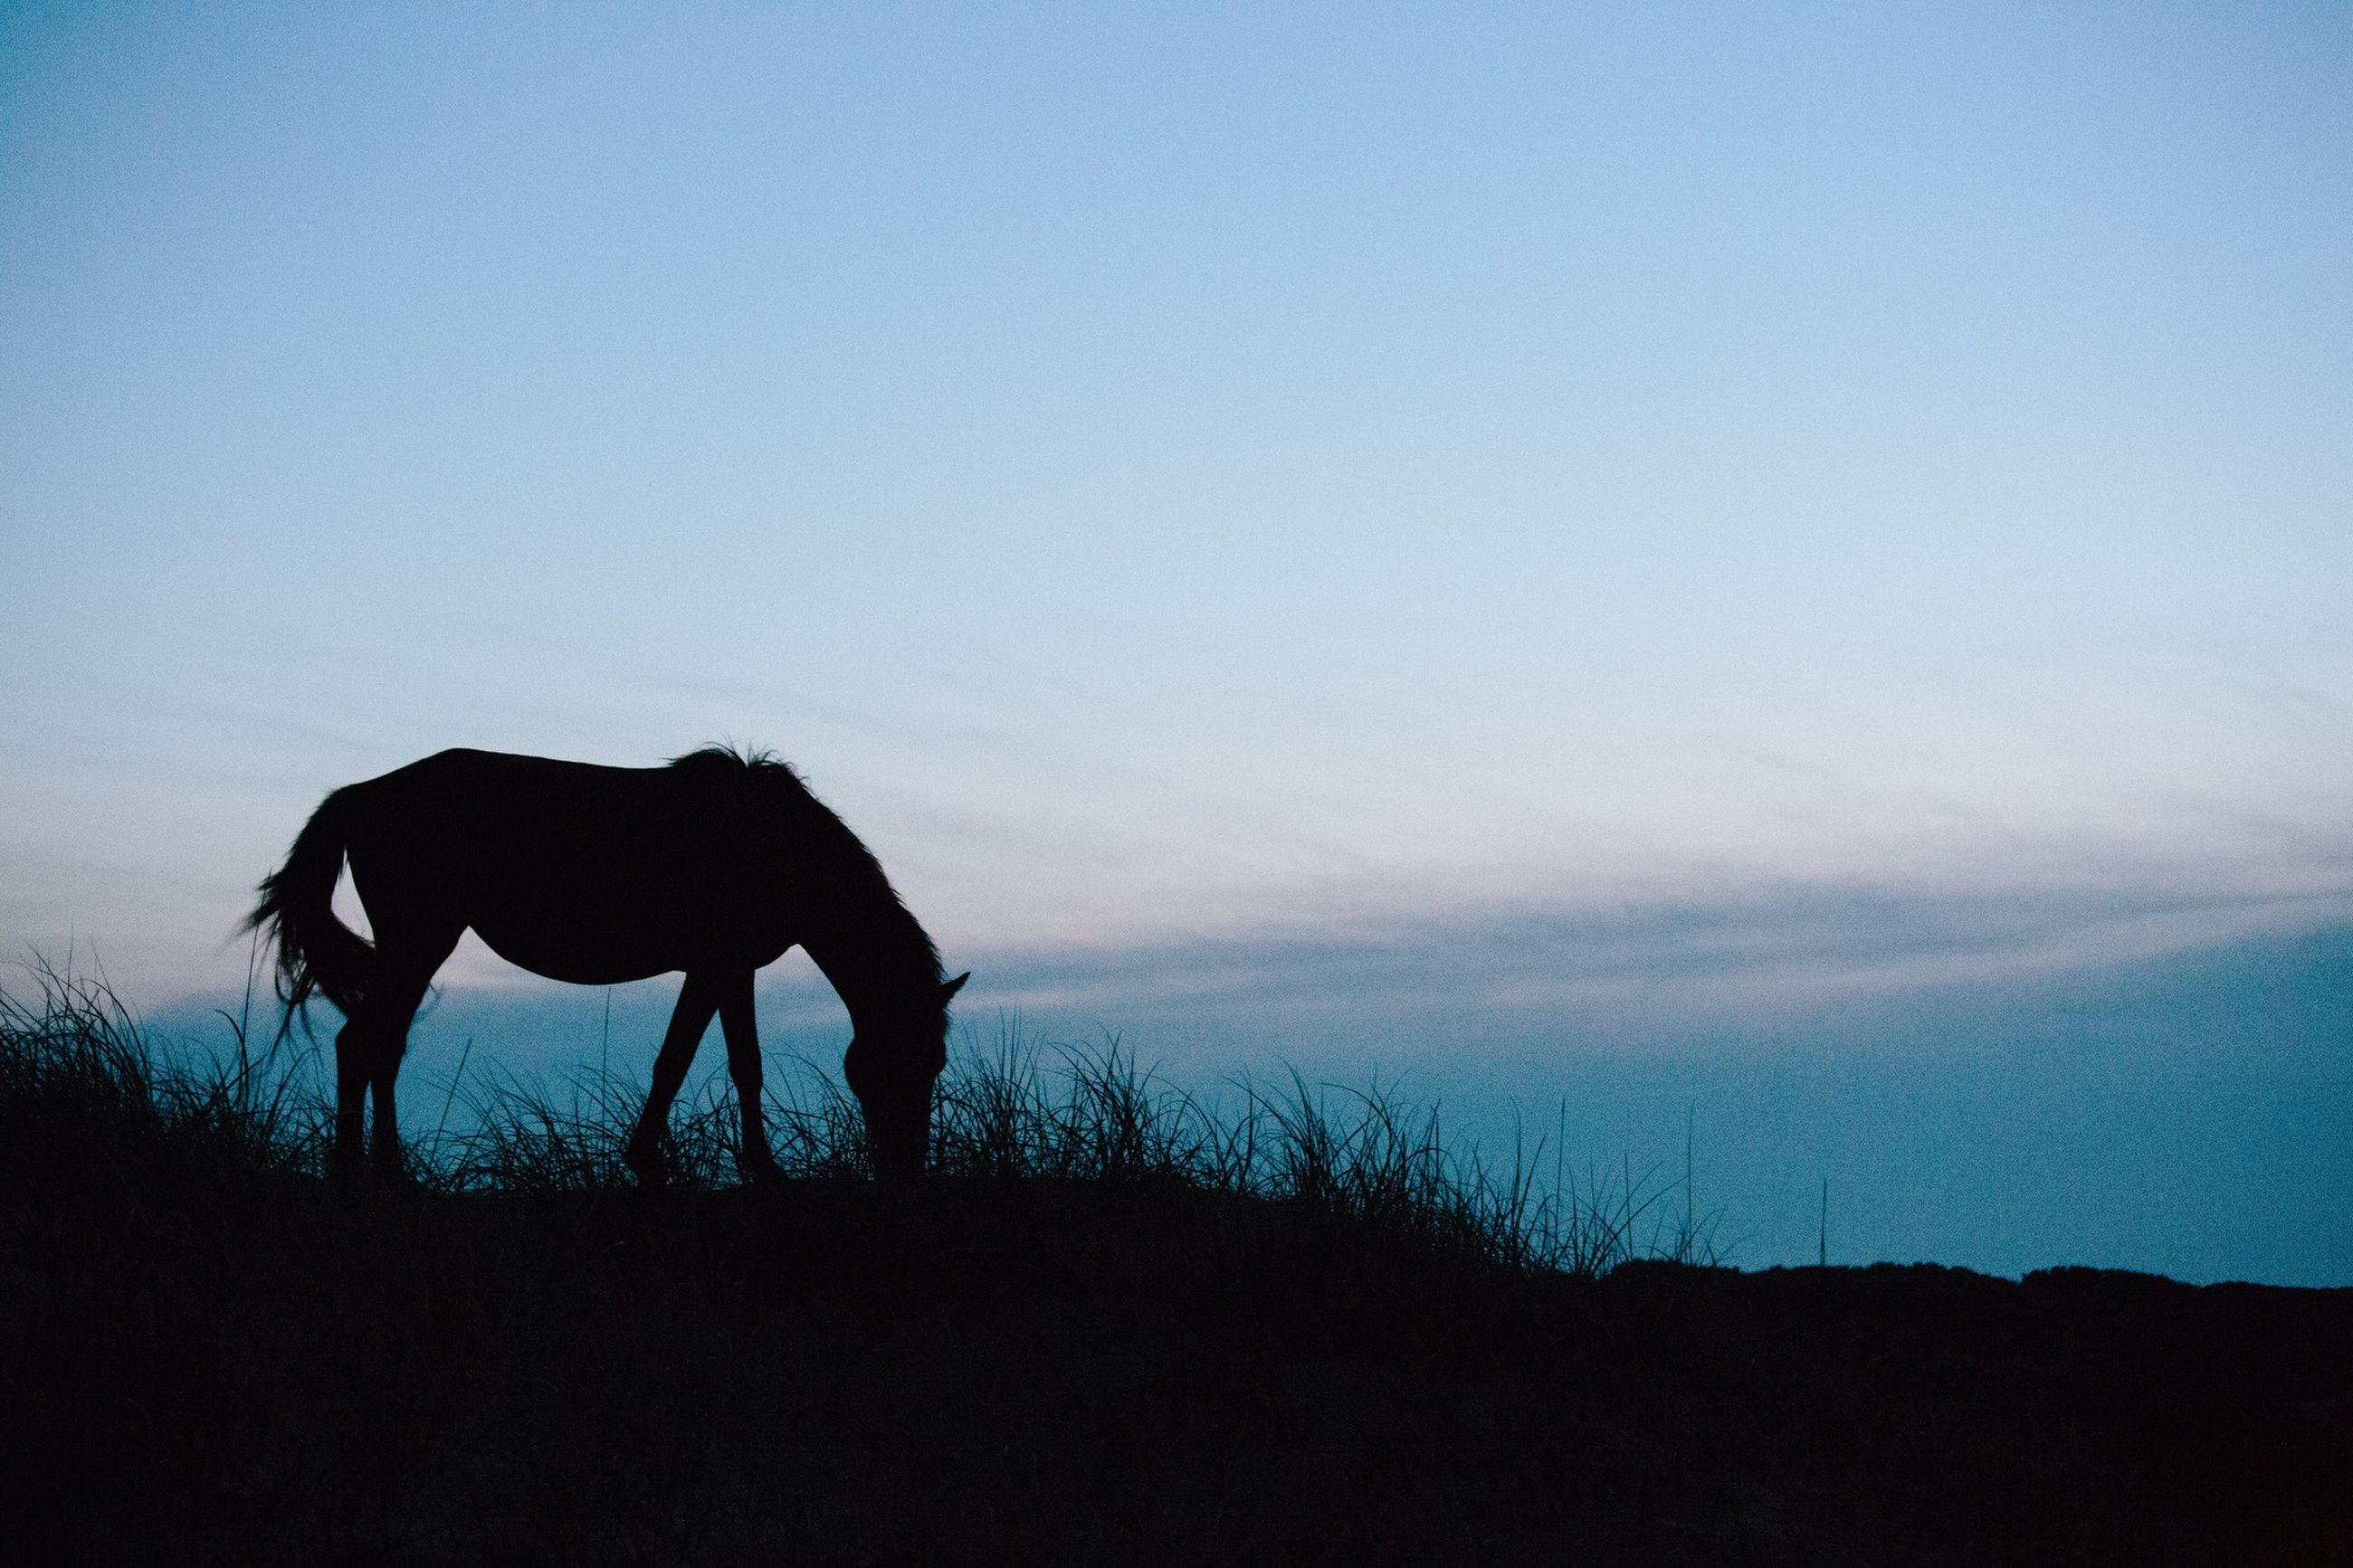 domestic animals, silhouette, mammal, animal themes, horse, full length, standing, field, sky, one animal, working animal, copy space, men, landscape, livestock, rear view, side view, walking, nature